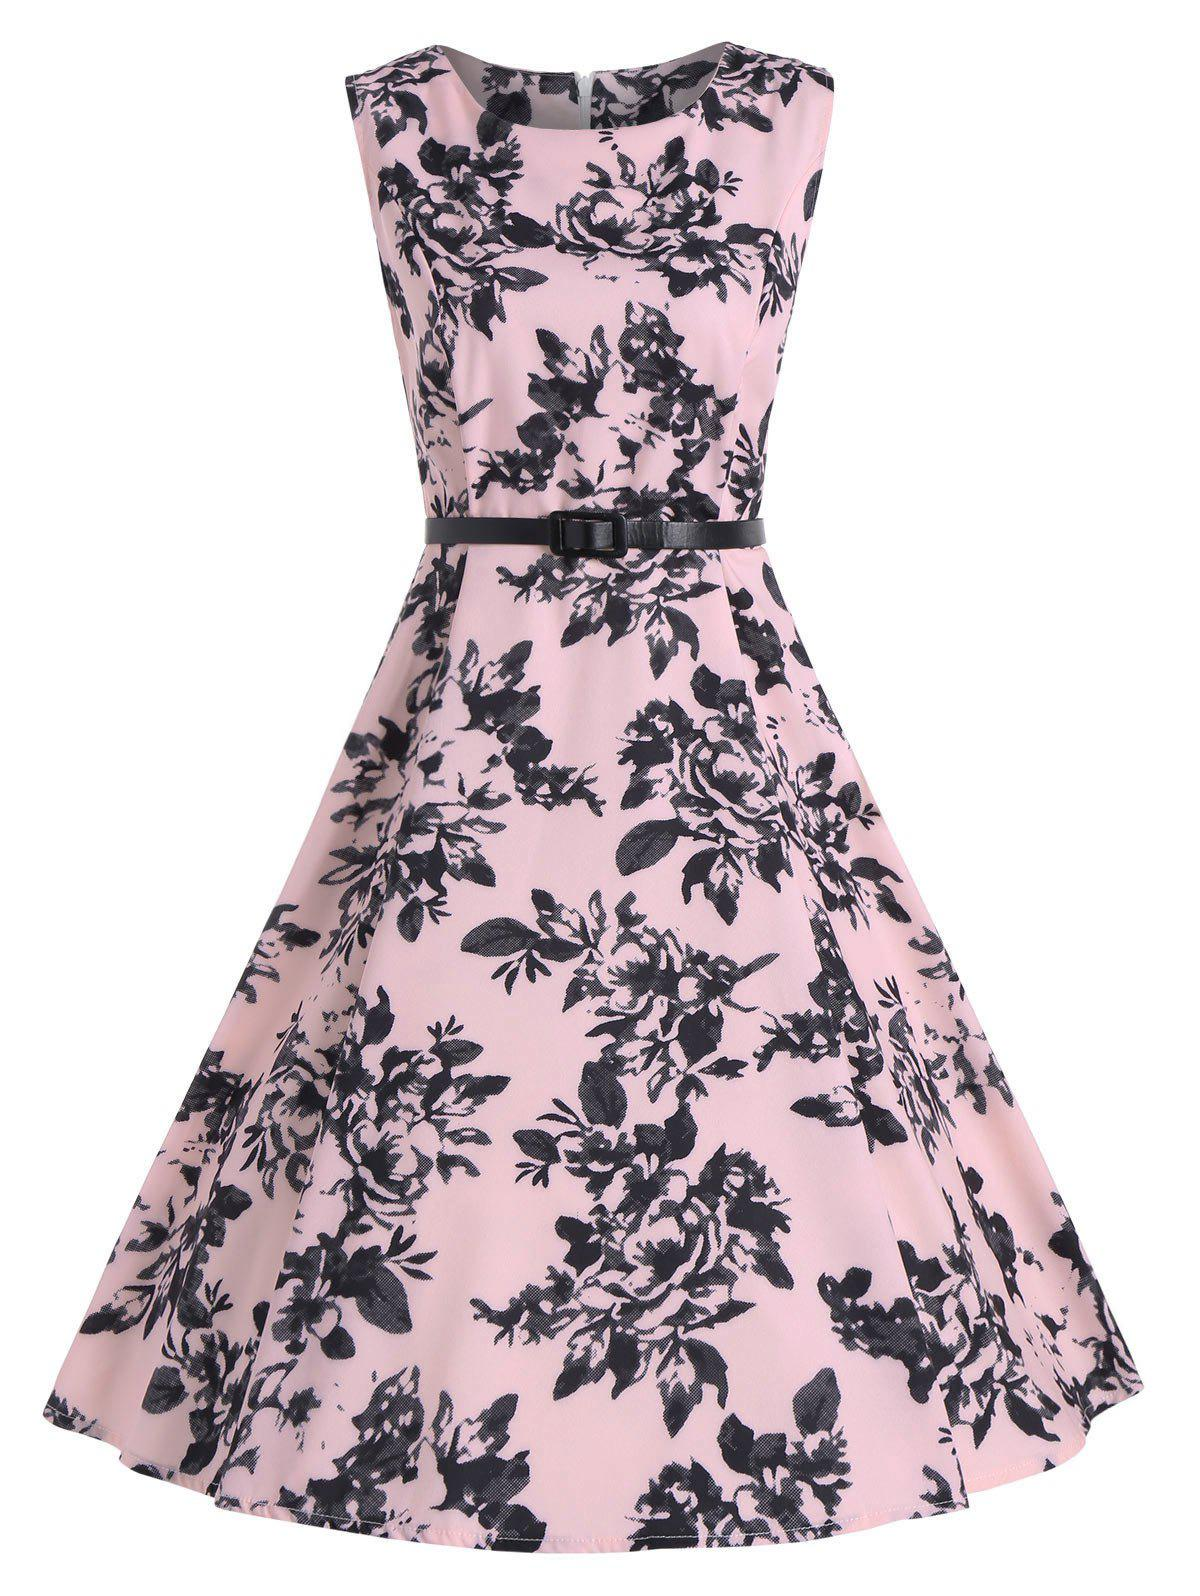 Sleeveless Vintage Print A Line Party Dress - PINK 2XL